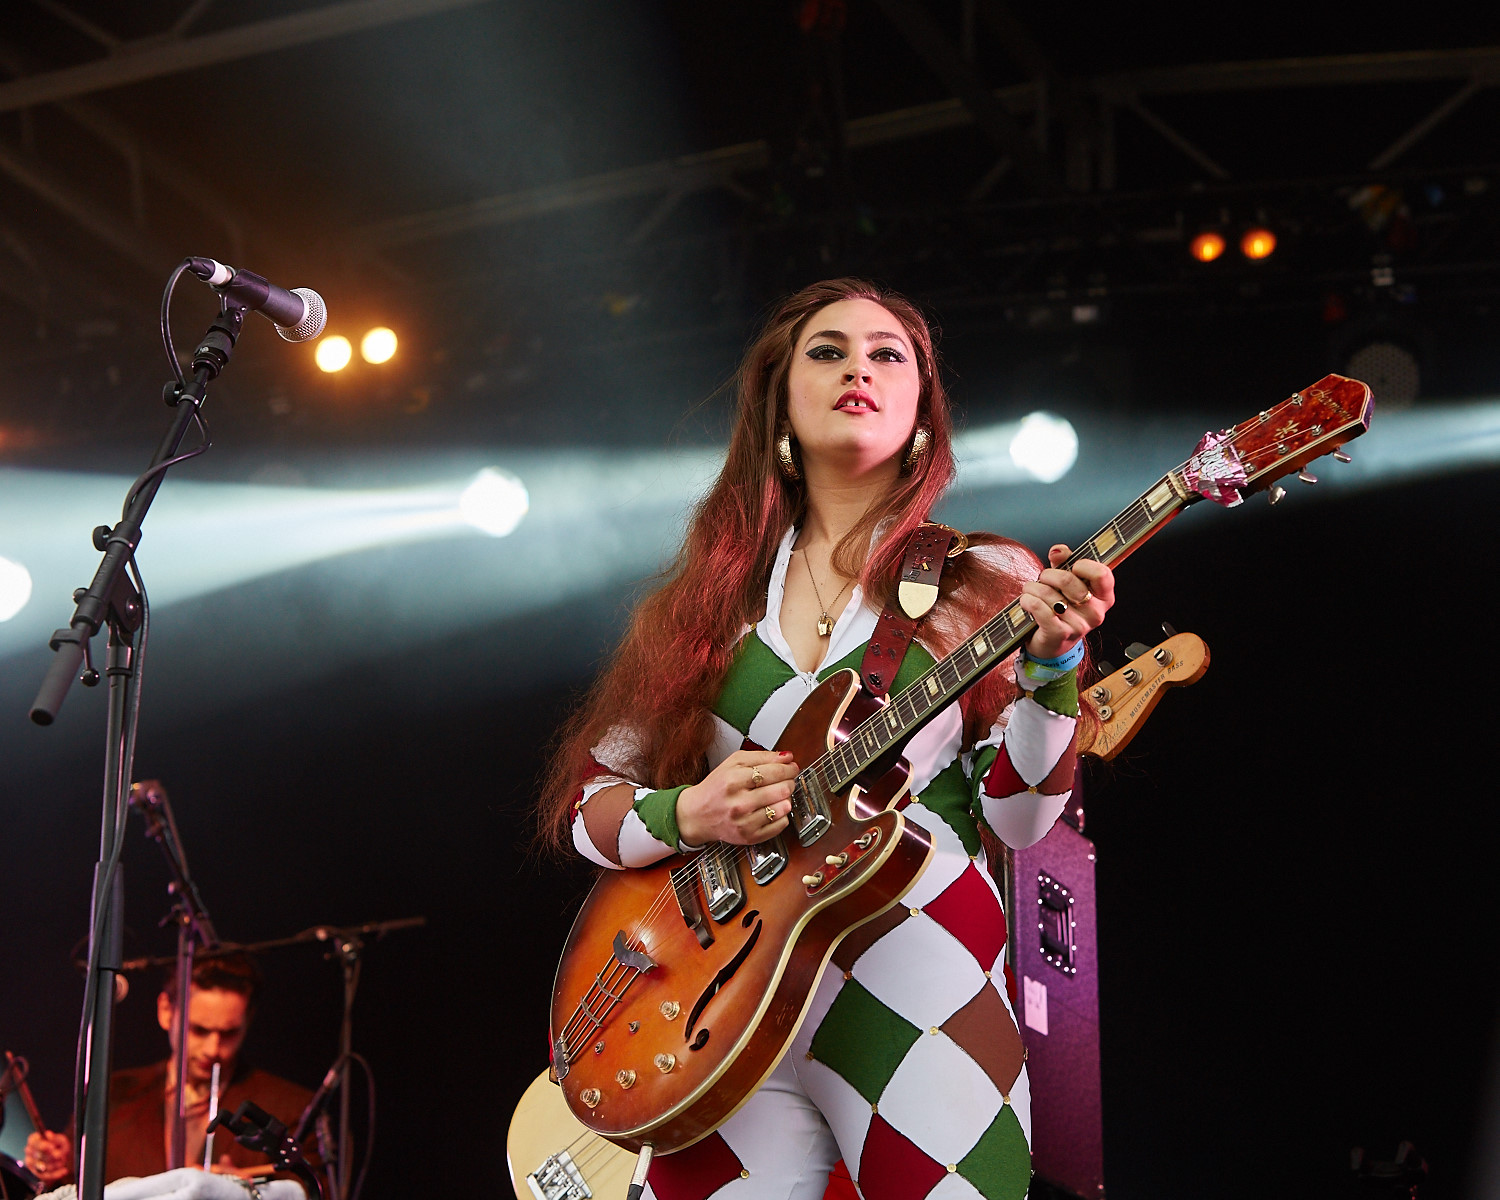 20th June 2015. Kitty Daisy & Lewis plays Barclaycard British Summertime in London's Hyde Park.